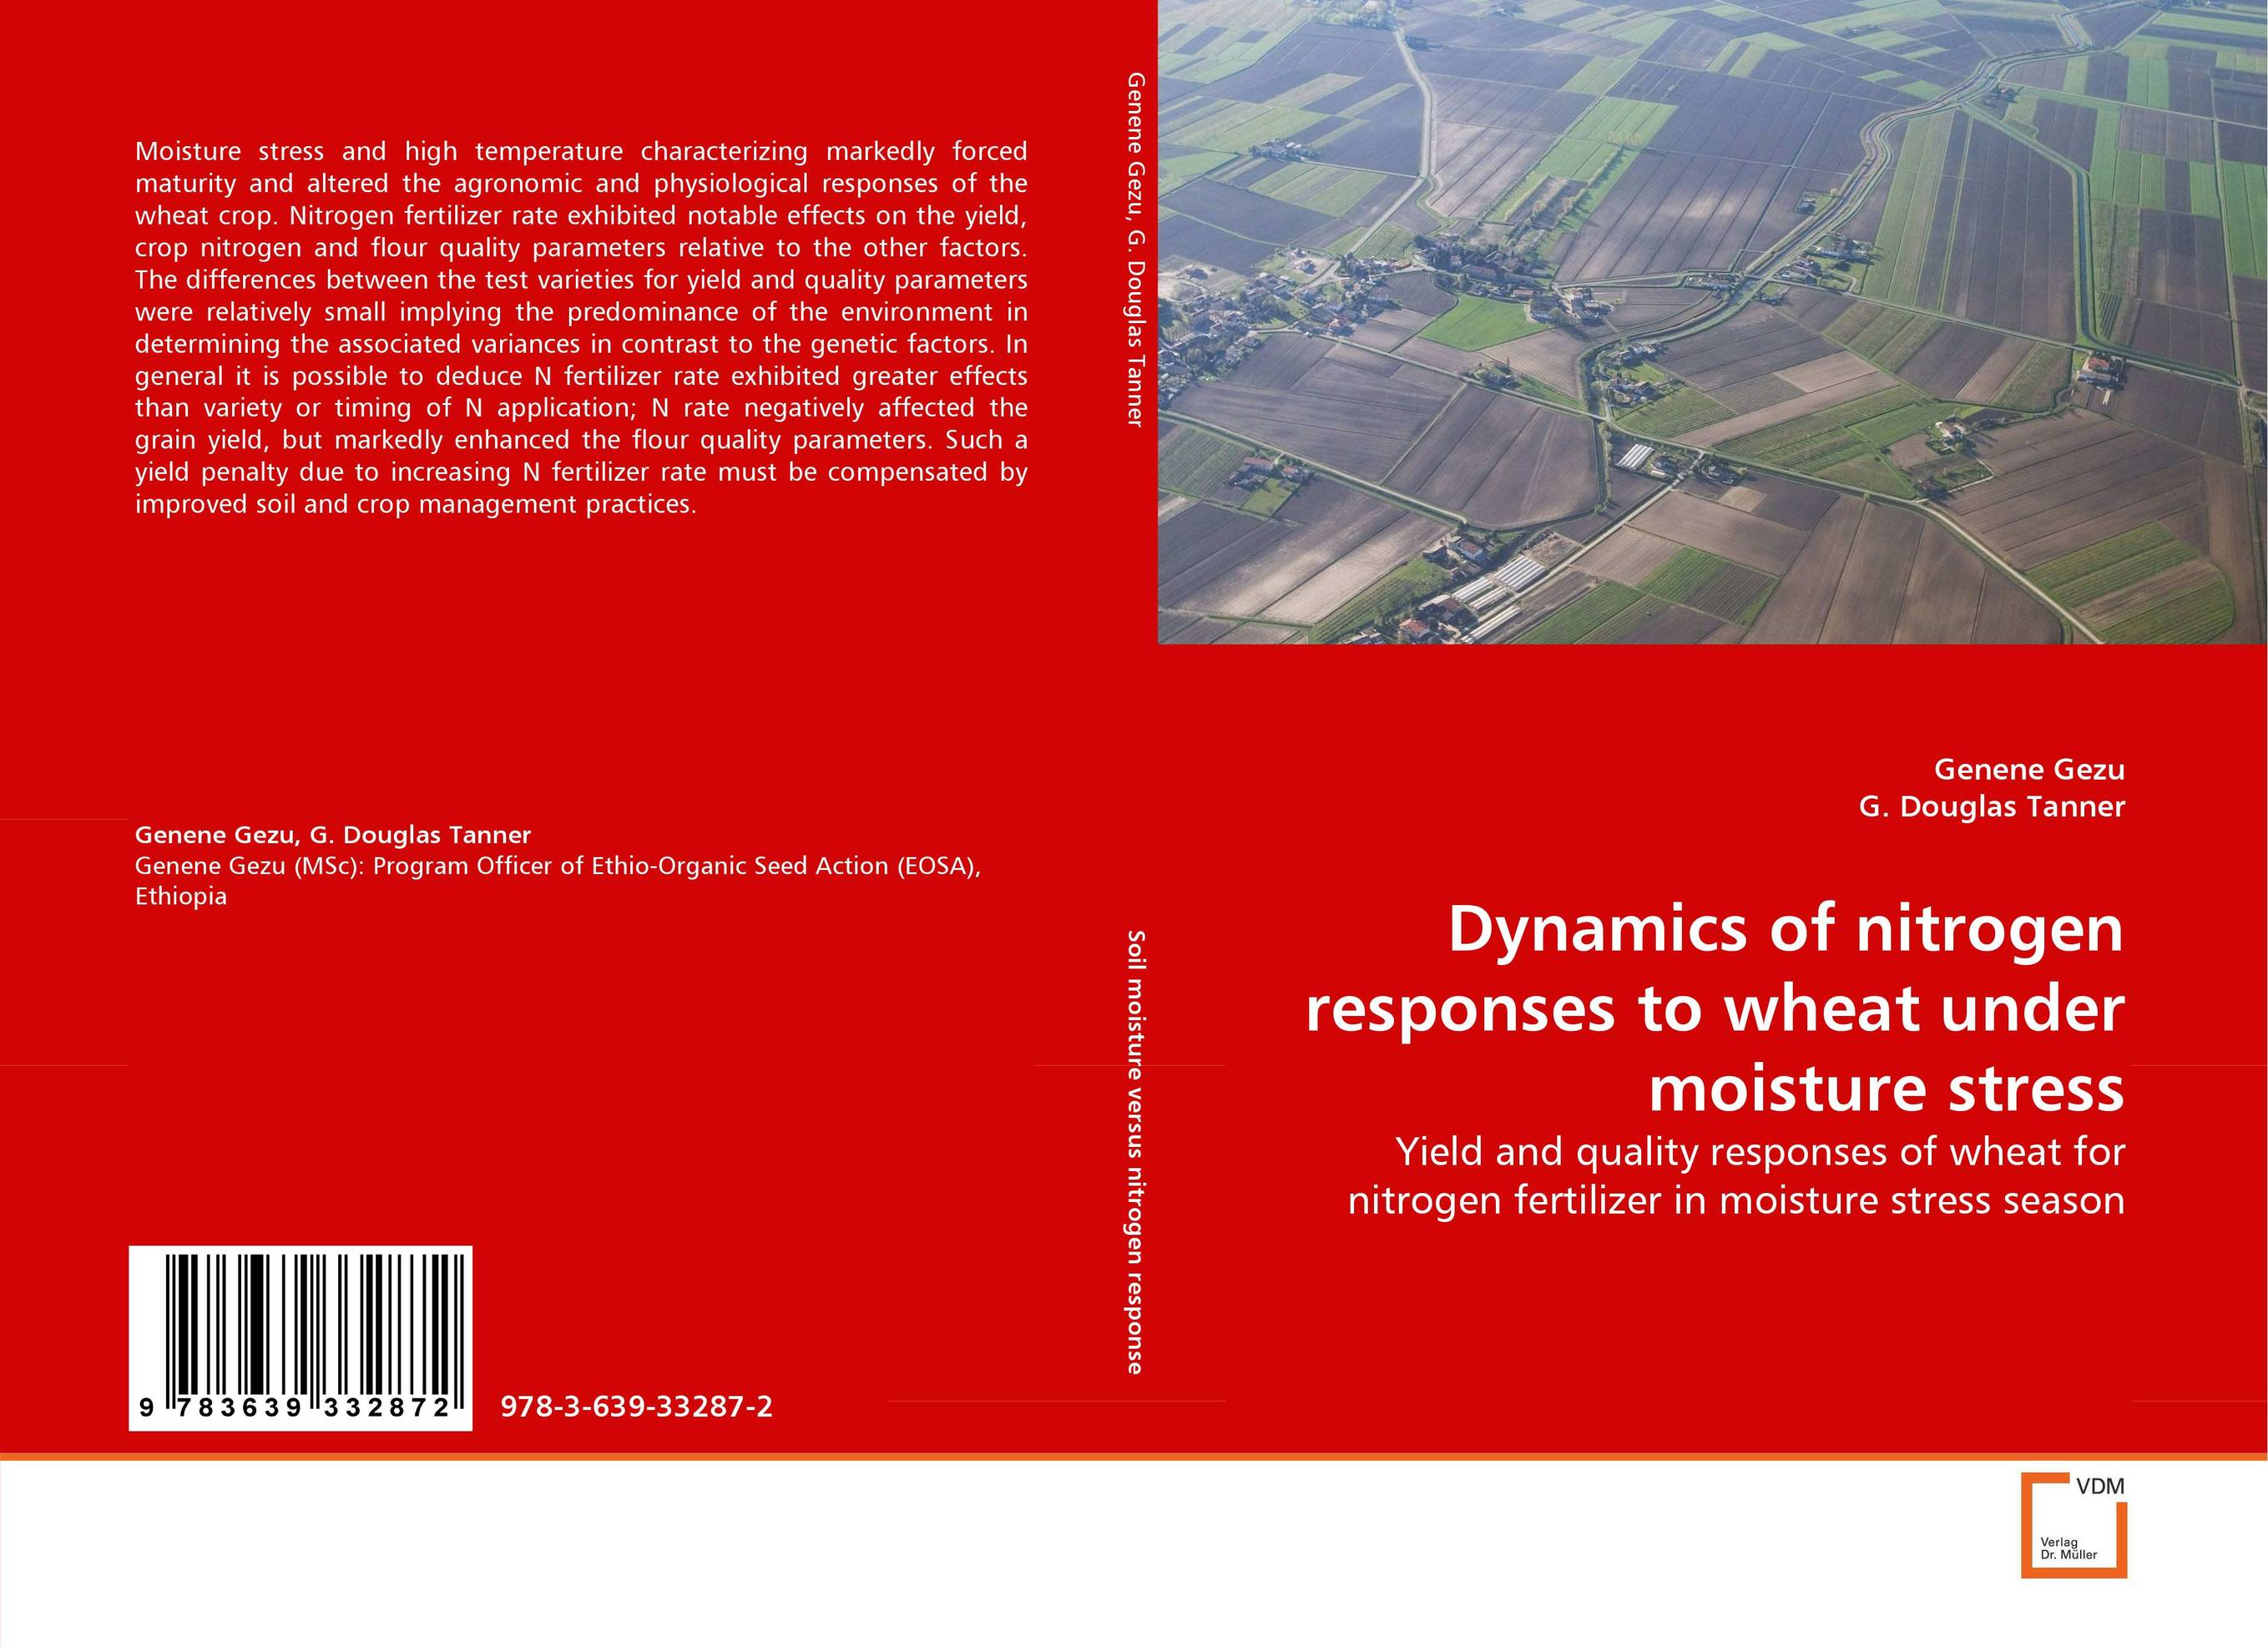 Dynamics of nitrogen responses to wheat under moisture stress